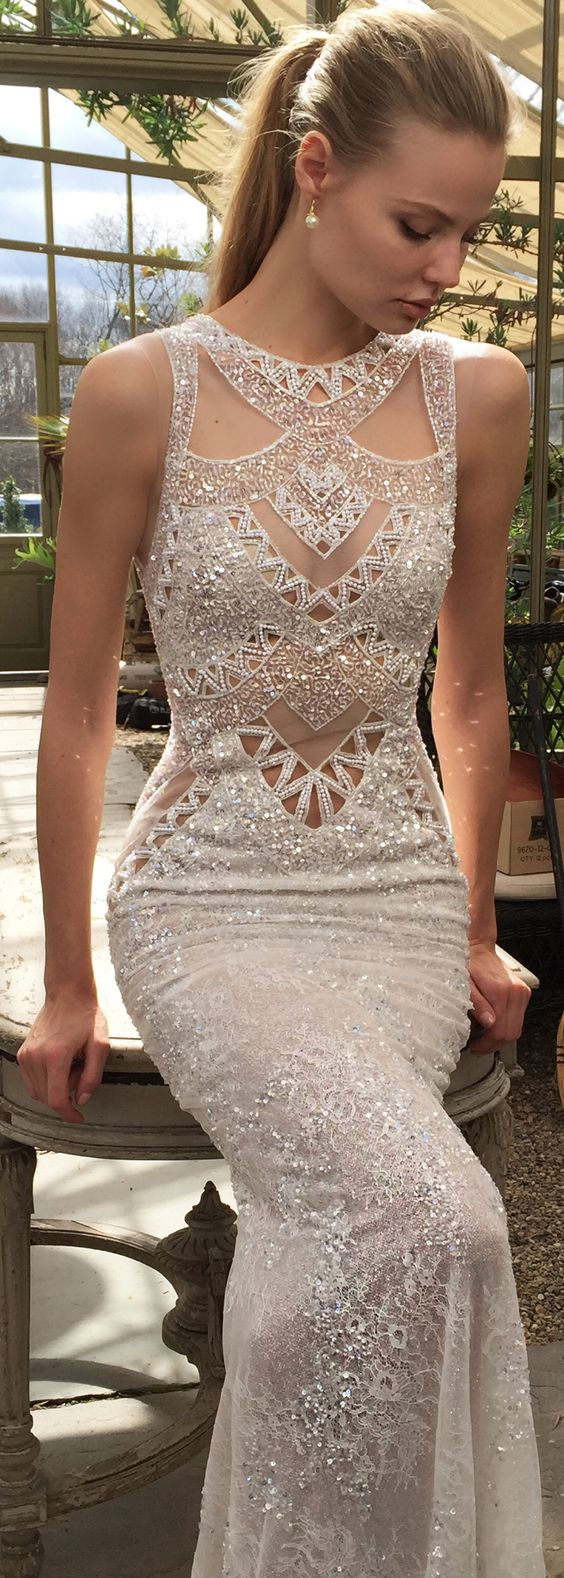 Elegant Mermaid Prom Dresses,Sleeveless Beading Wedding Dresses,Charming Women Evening Dresses